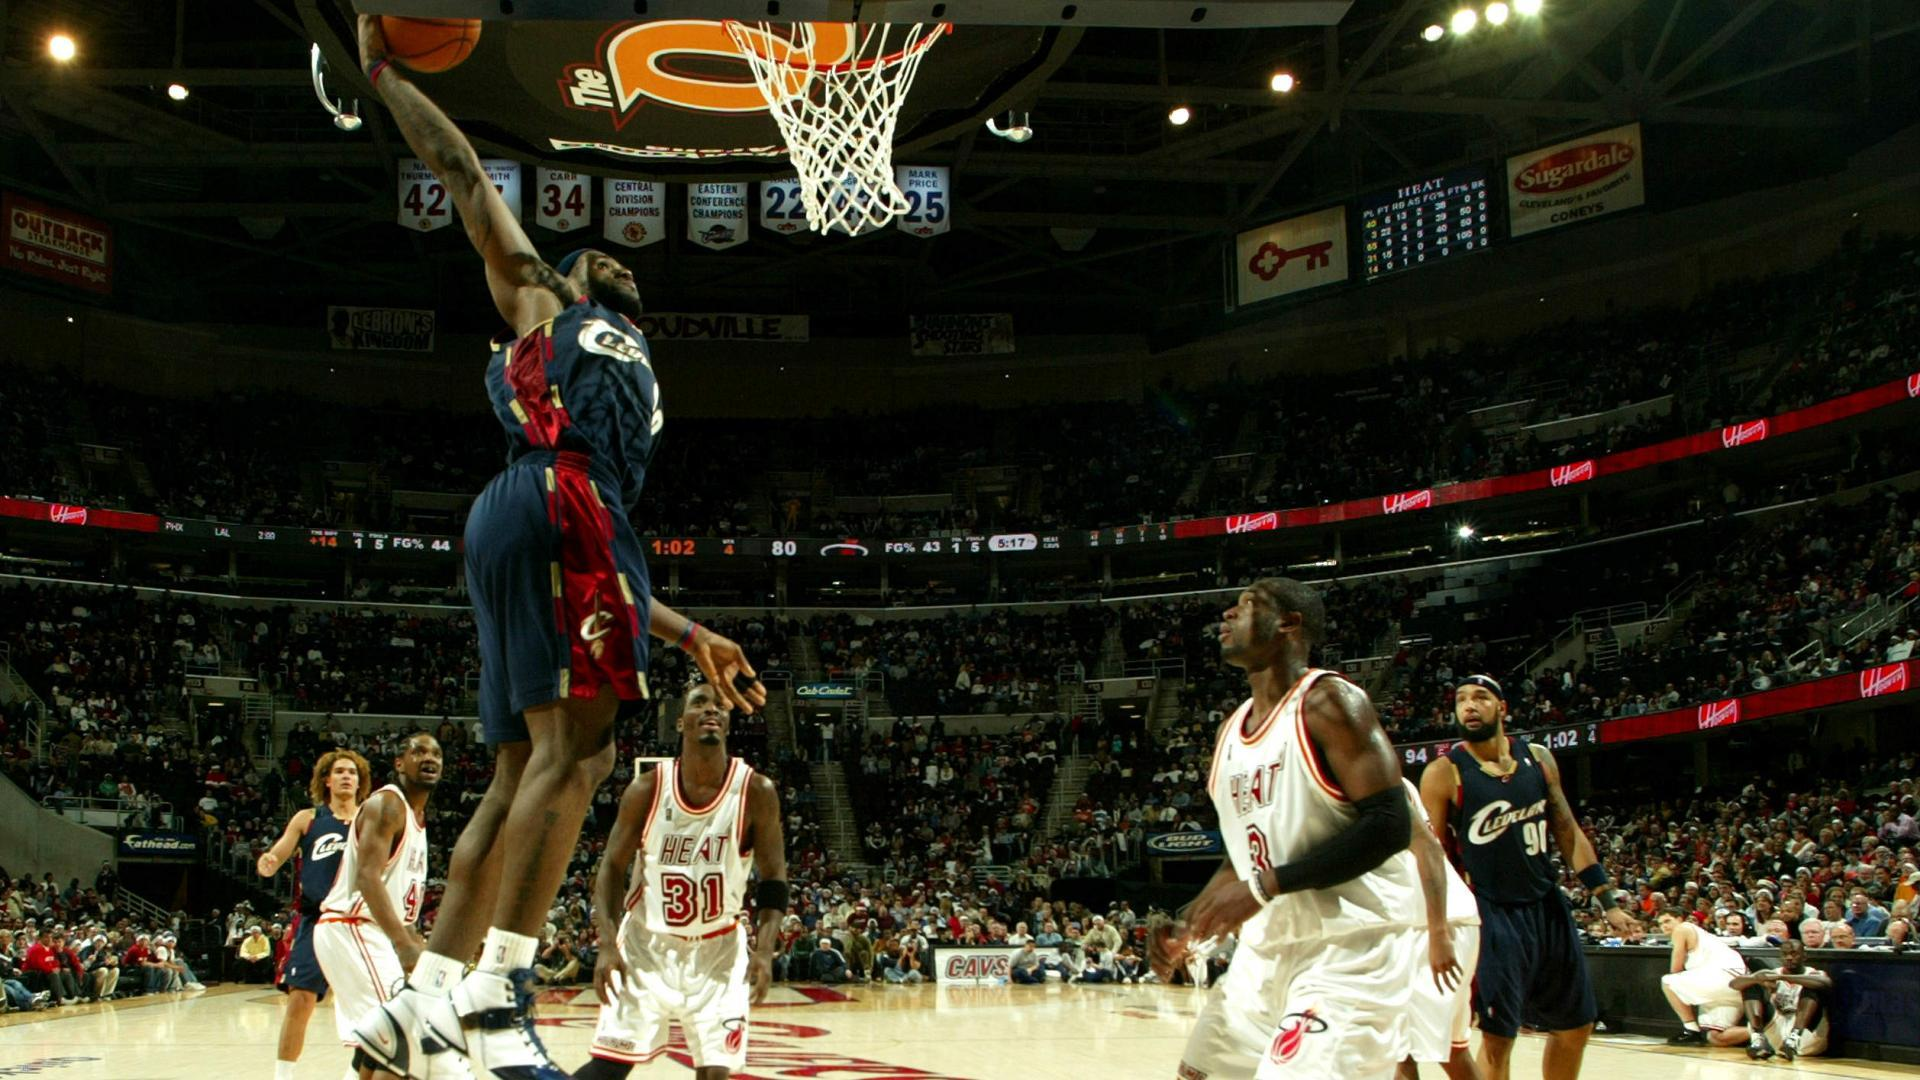 3acad5421b1 LeBron James elevates for a power jam against the Heat on Dec. 25